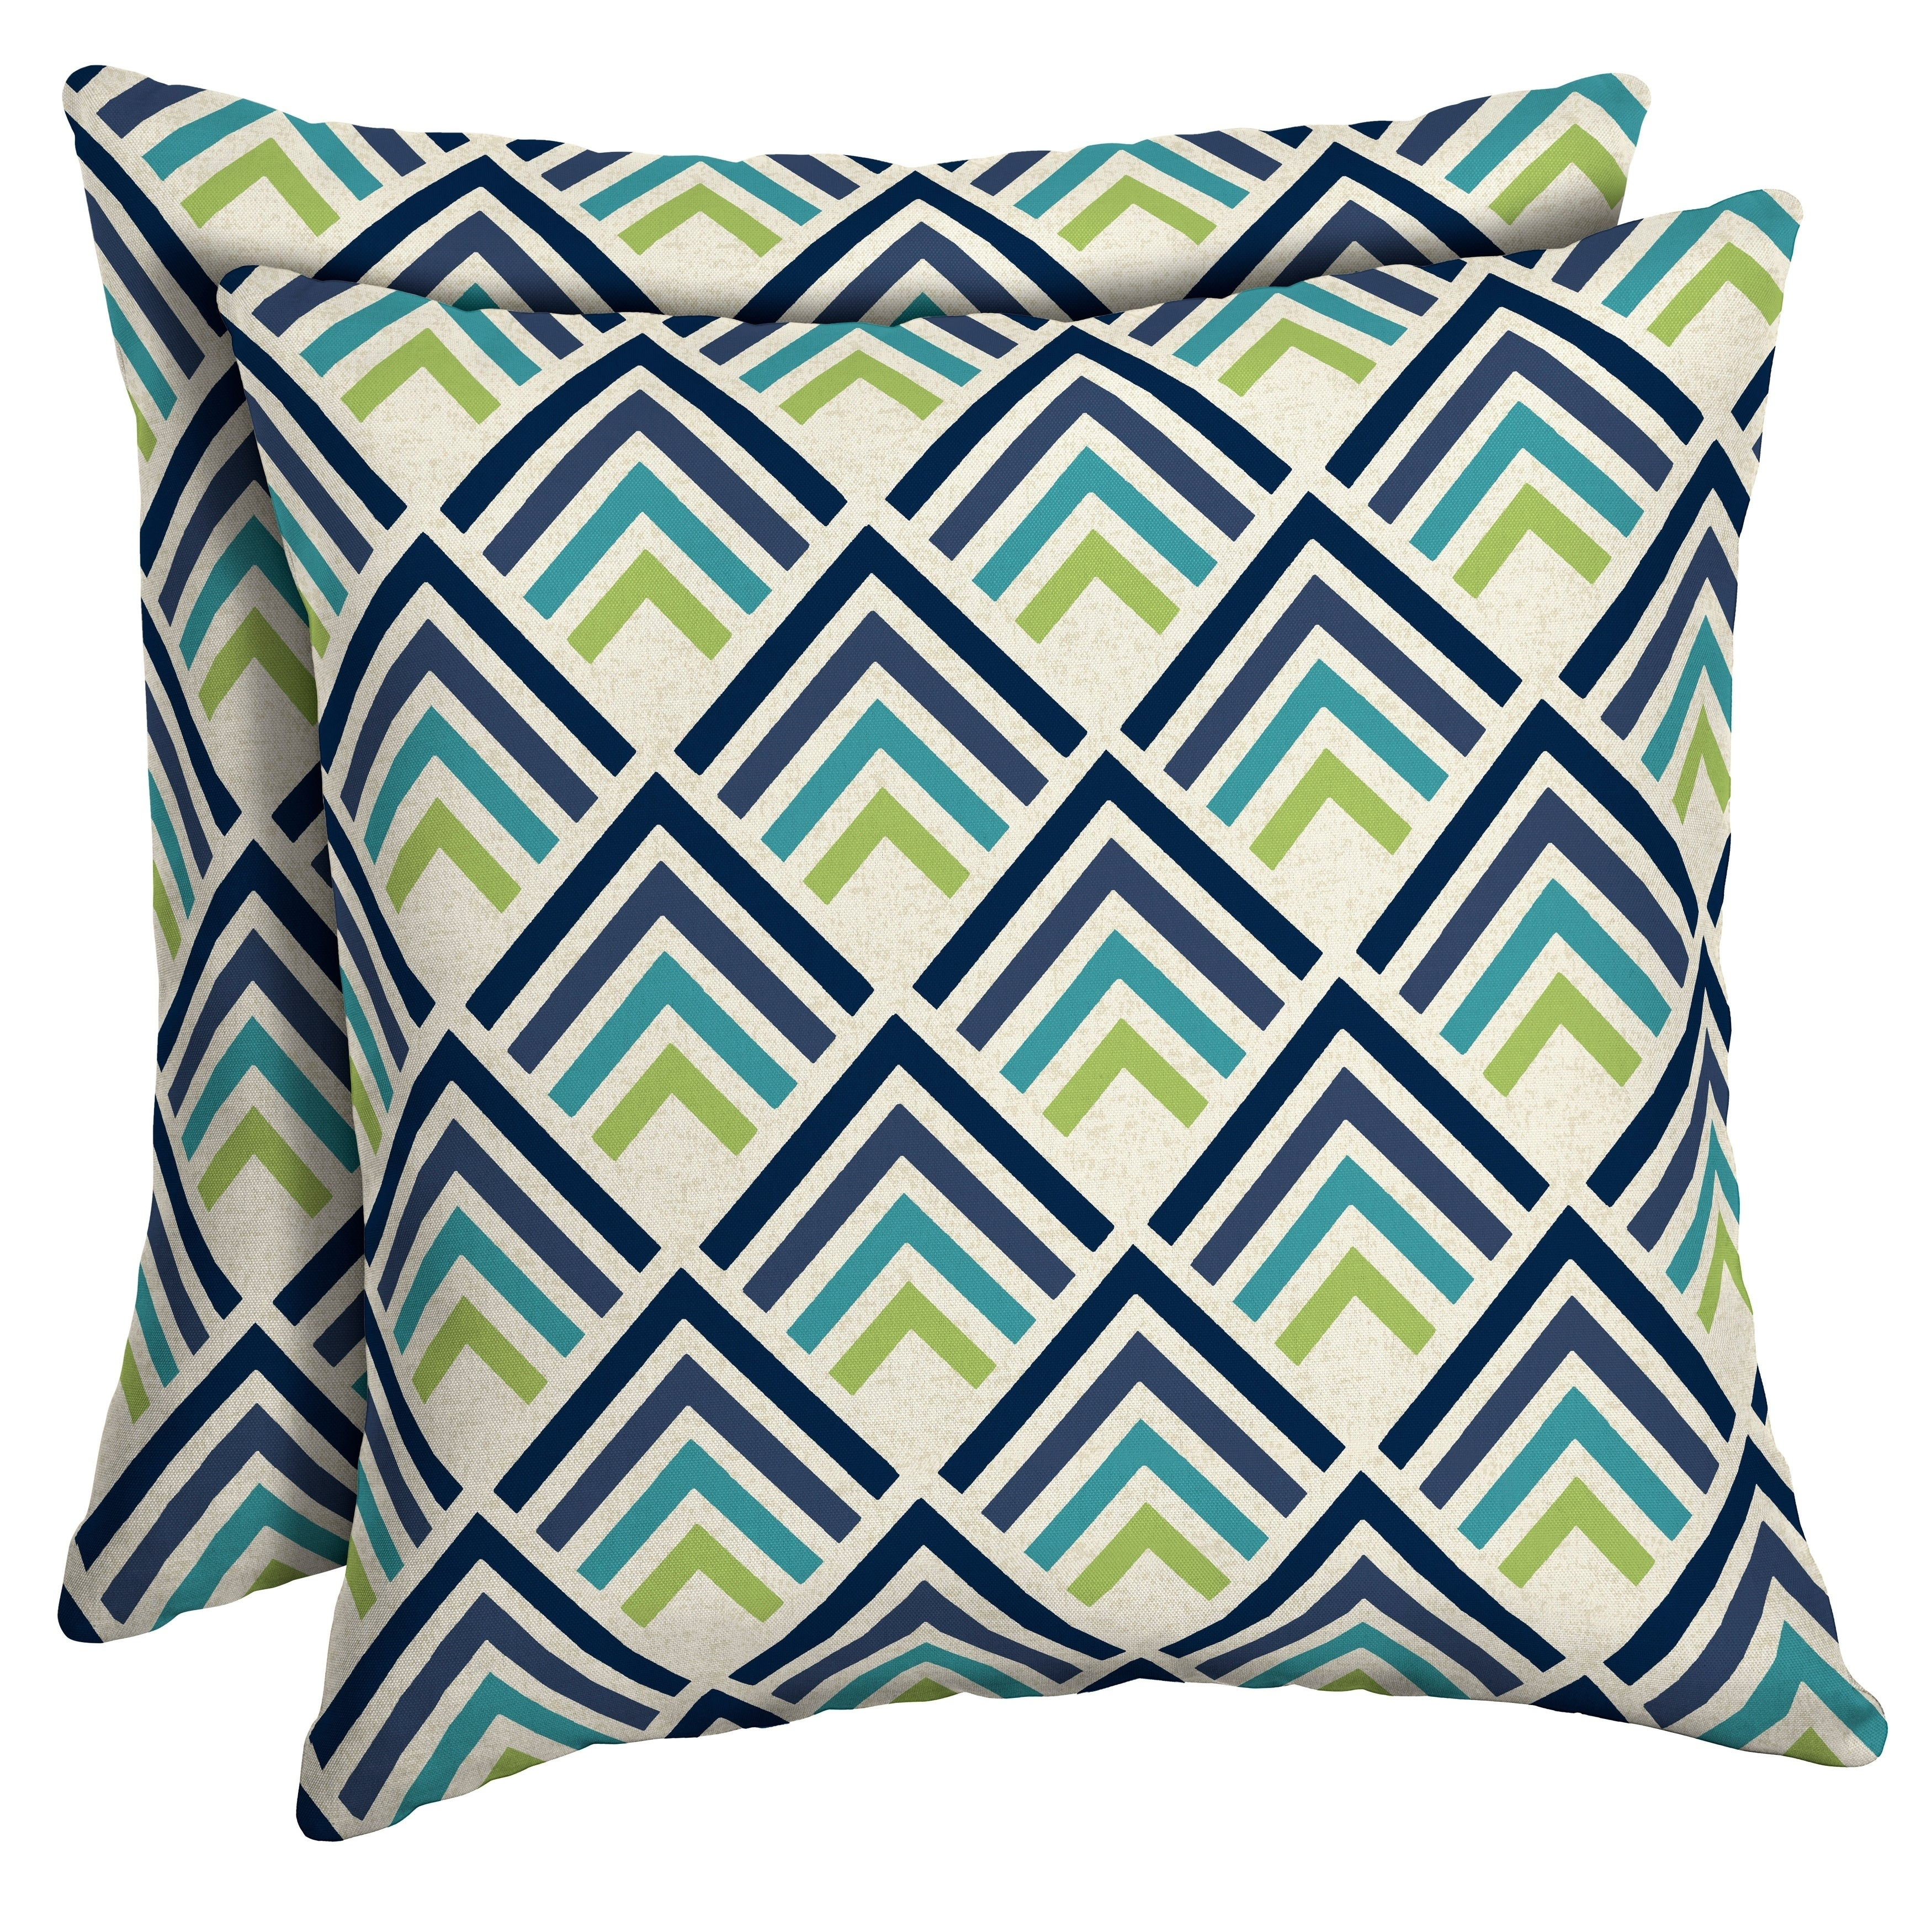 Shop Arden Selections Sapphire Reid Diamond Outdoor Square Pillow